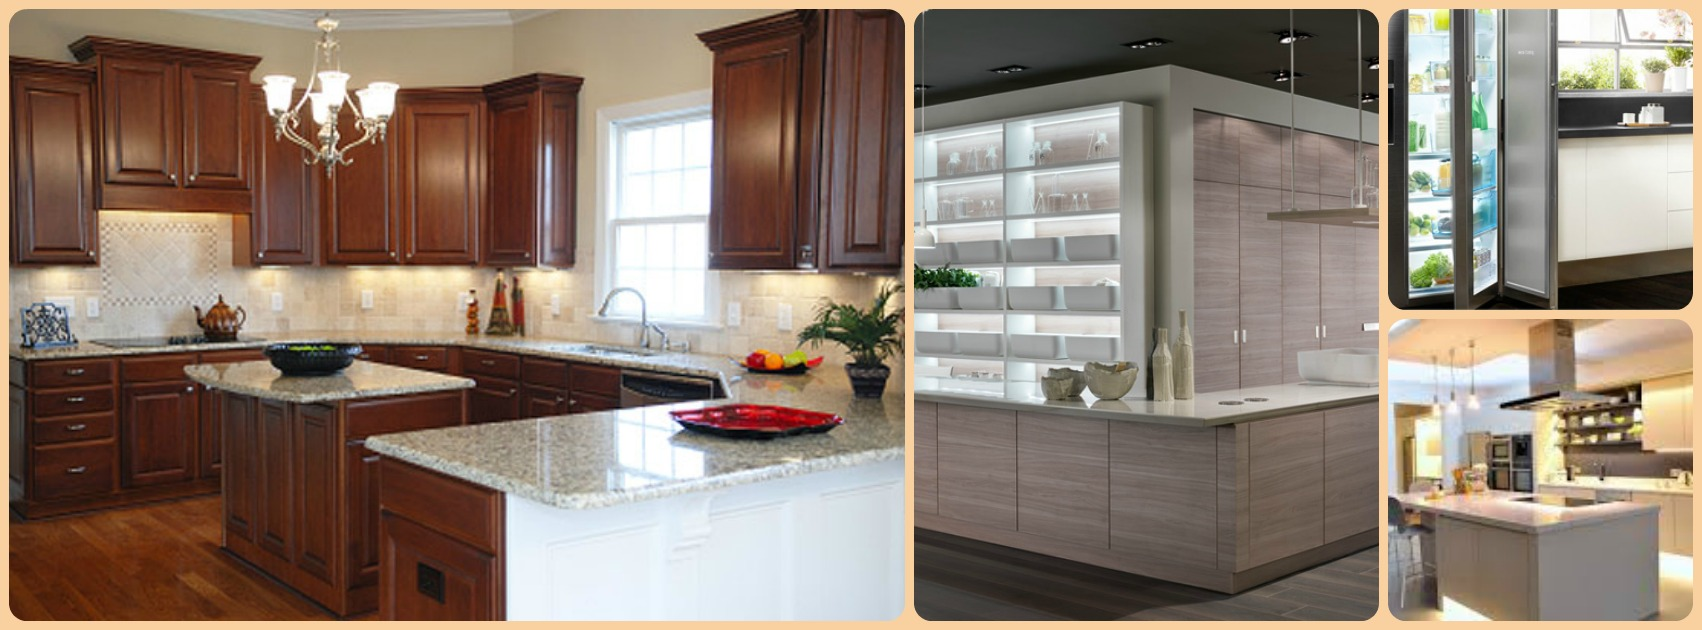 Top 10 kitchen bath contractors marin county ca golden for Kitchen and bath contractors